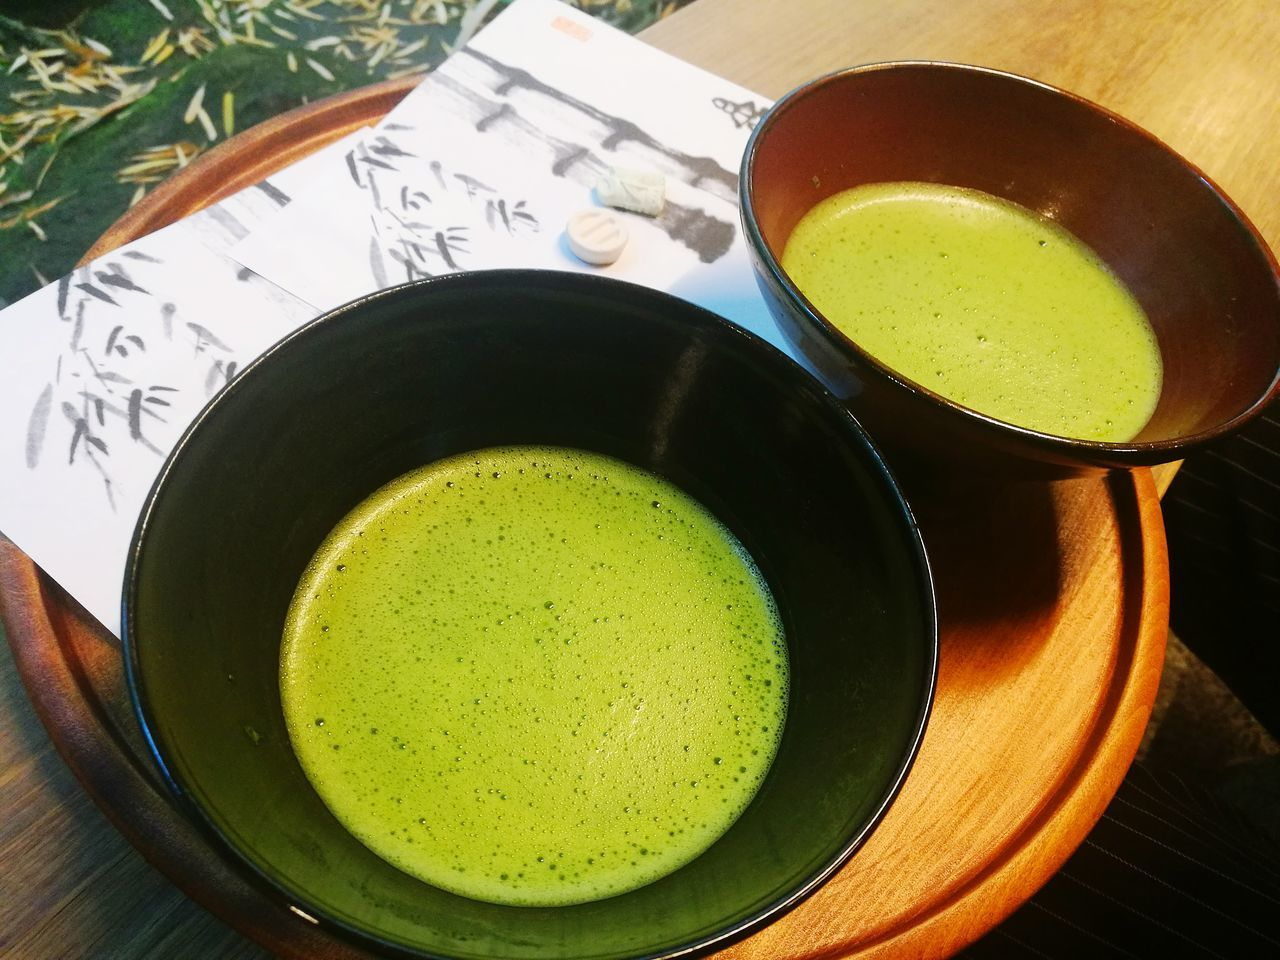 Food And Drink Matcha Tea Freshness Green Tea Green Color Directly Above Tea Ceremony Healthy Eating Cultures Drink Close-up Indoors  No People Food Ready-to-eat Day